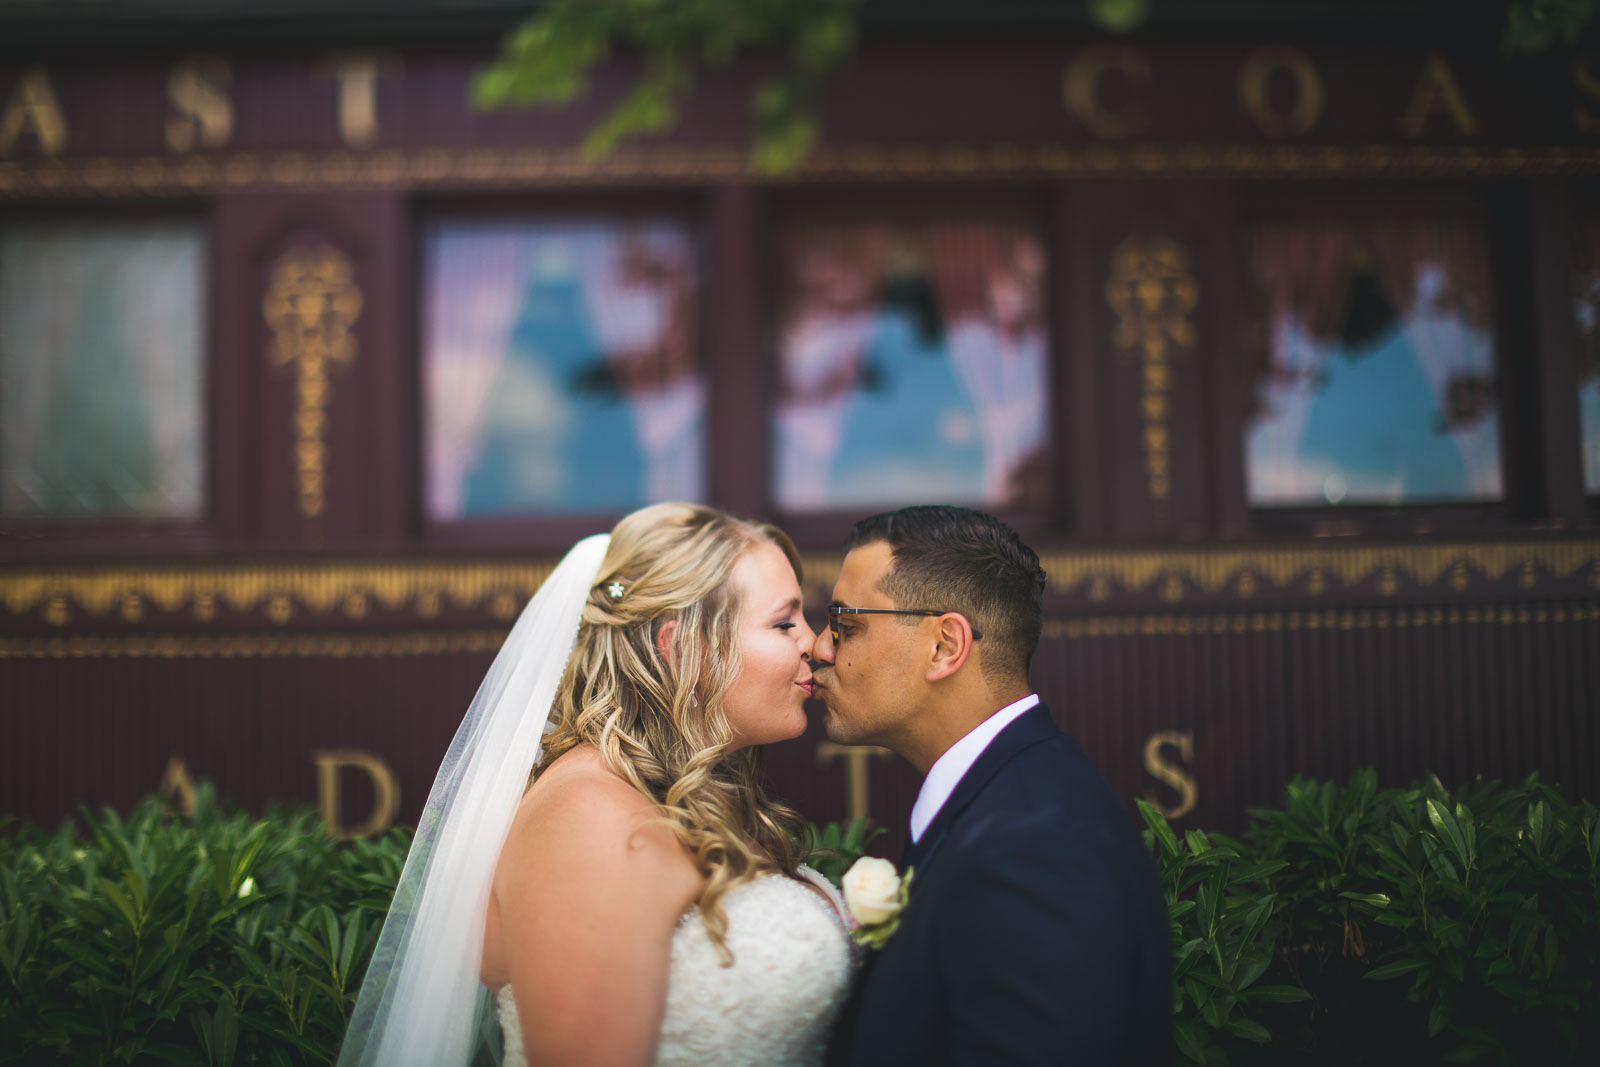 Kiss in front of Train Madison Hotel Morristown New Jersey Wedding